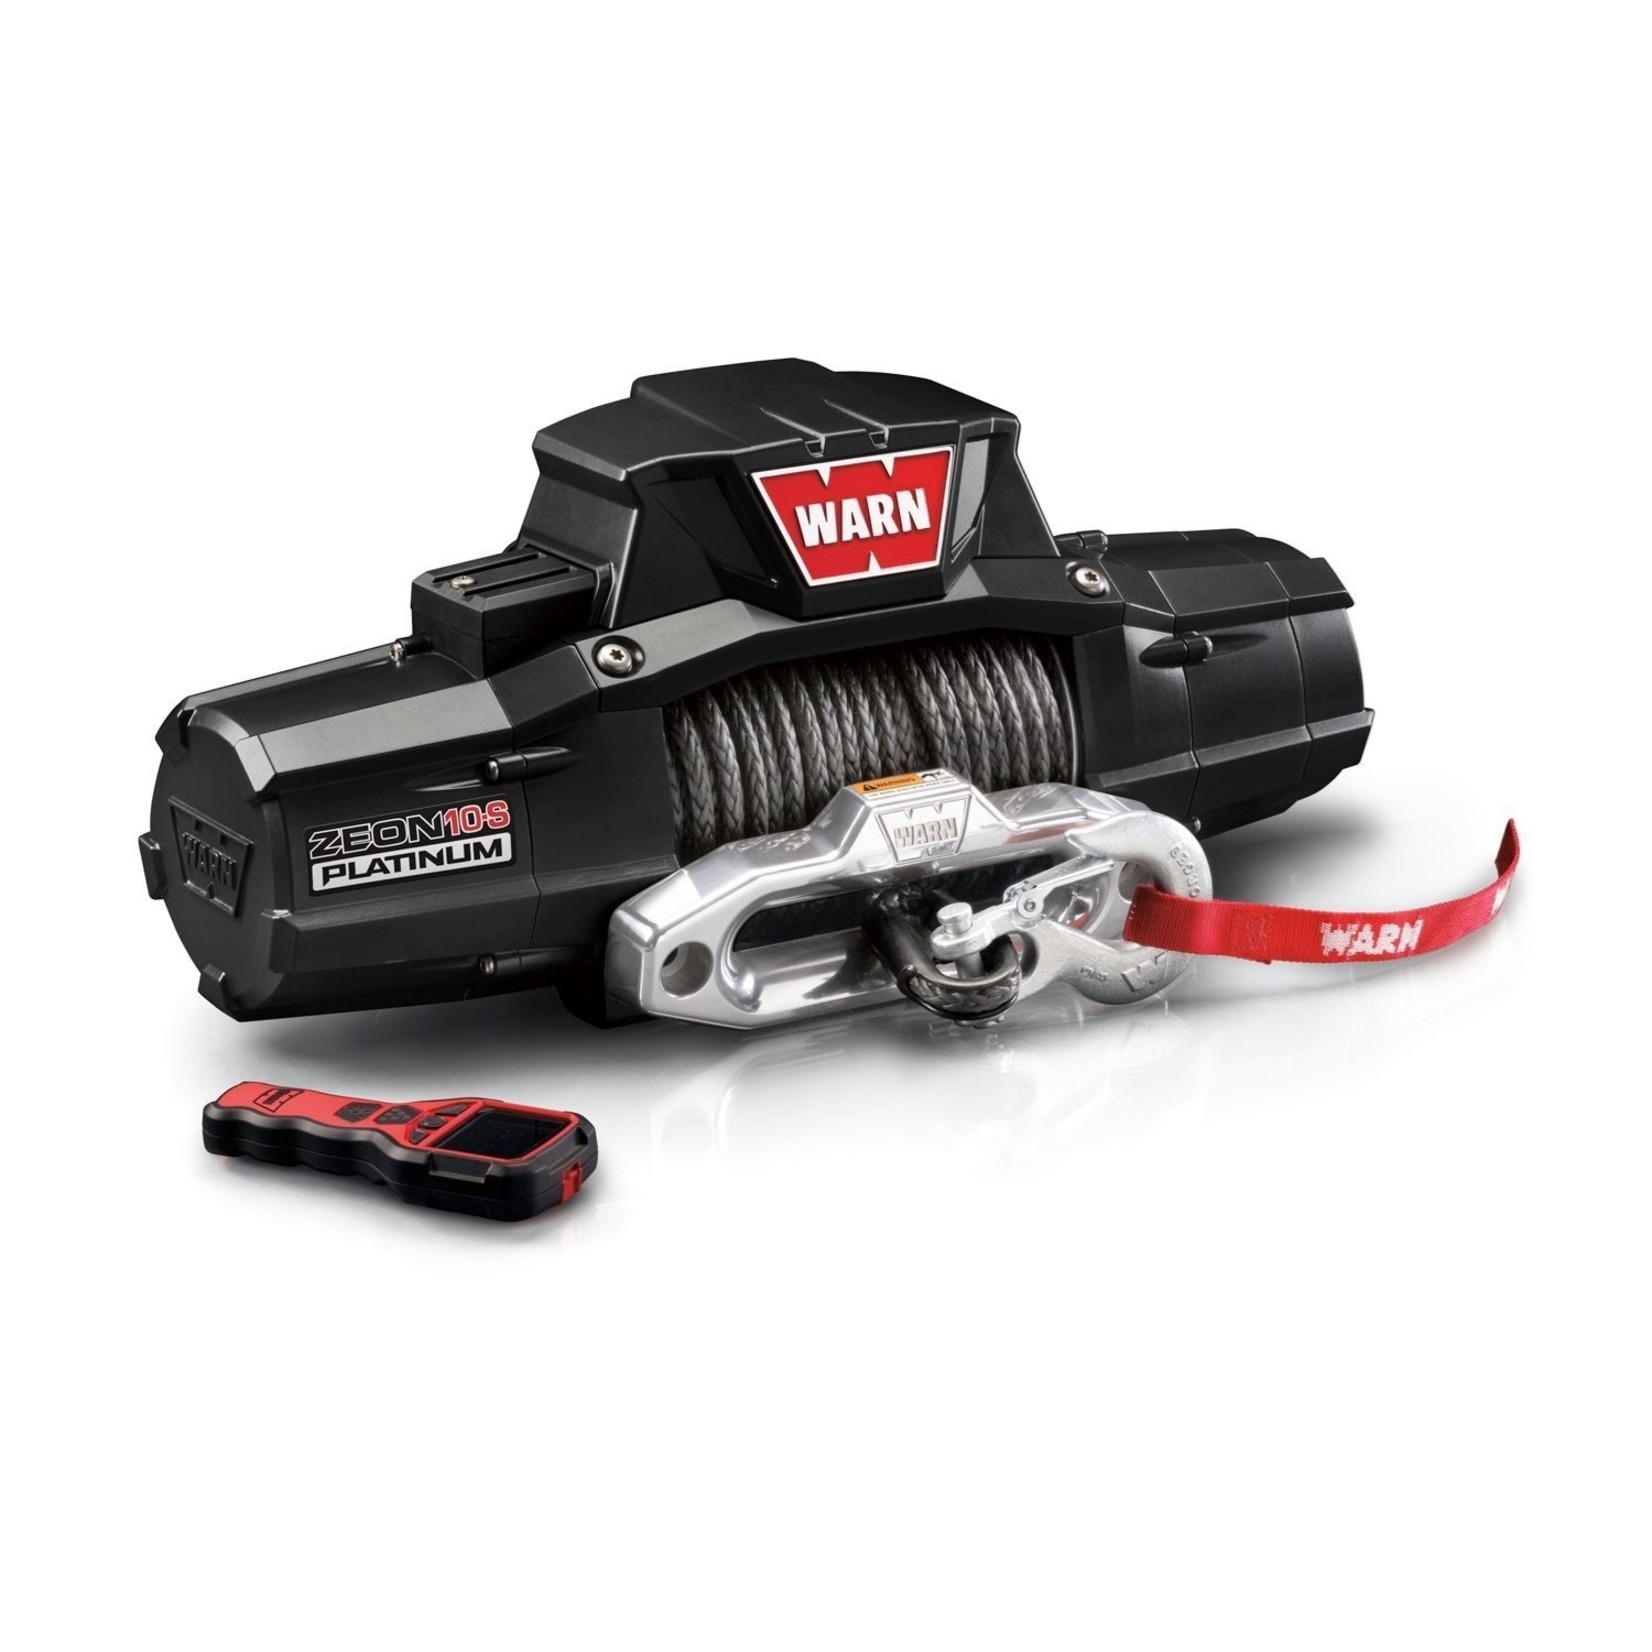 Warn ZEON Platinum 10-S Winch w/Synthetic Rope